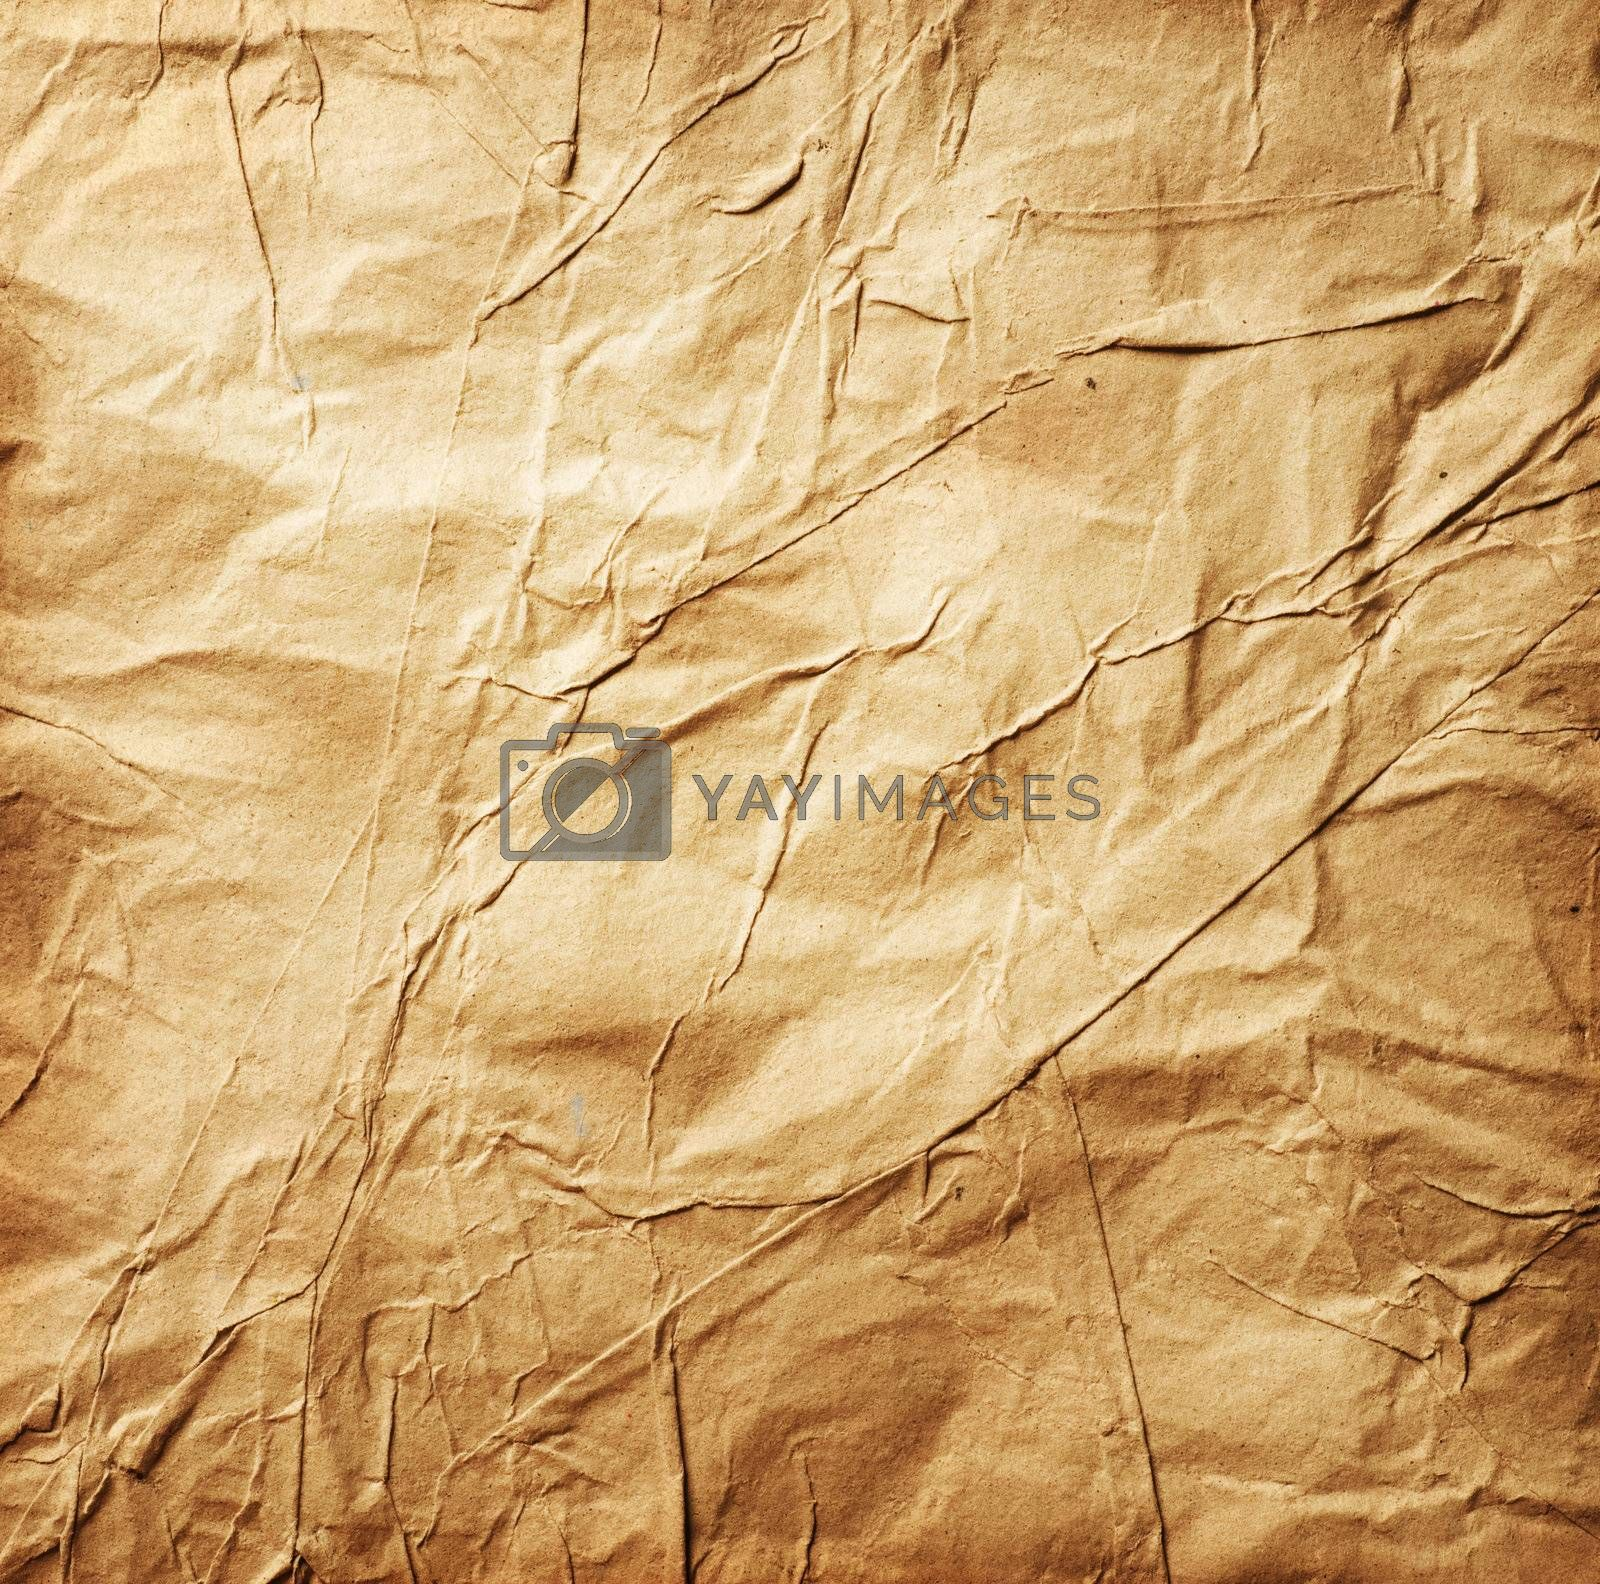 Paper. Old Crumpled Paper background by Subbotina Anna